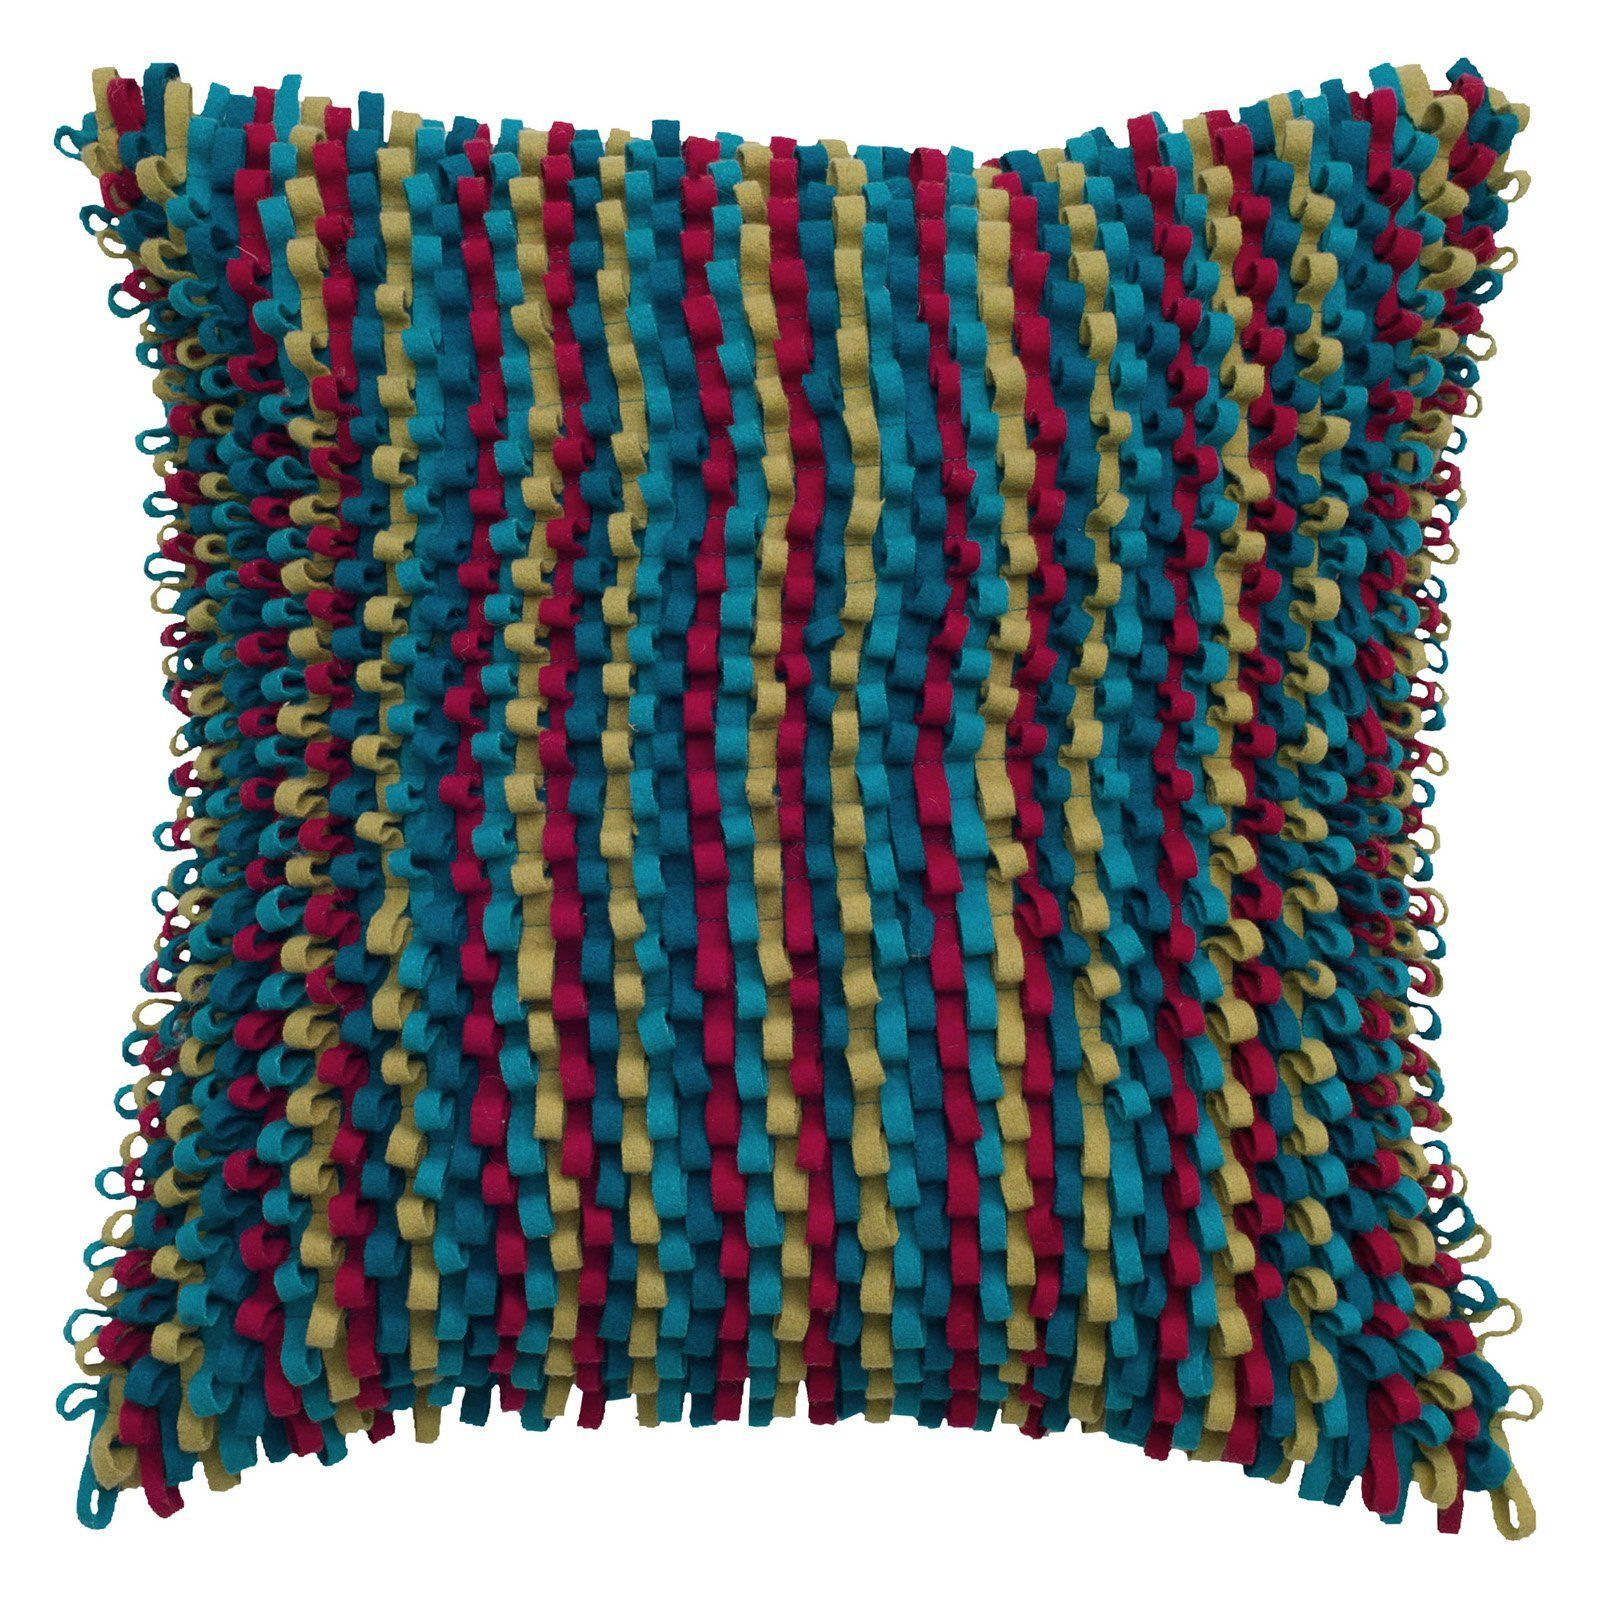 Rizzy home wool loop soft texture decorative throw pillow t